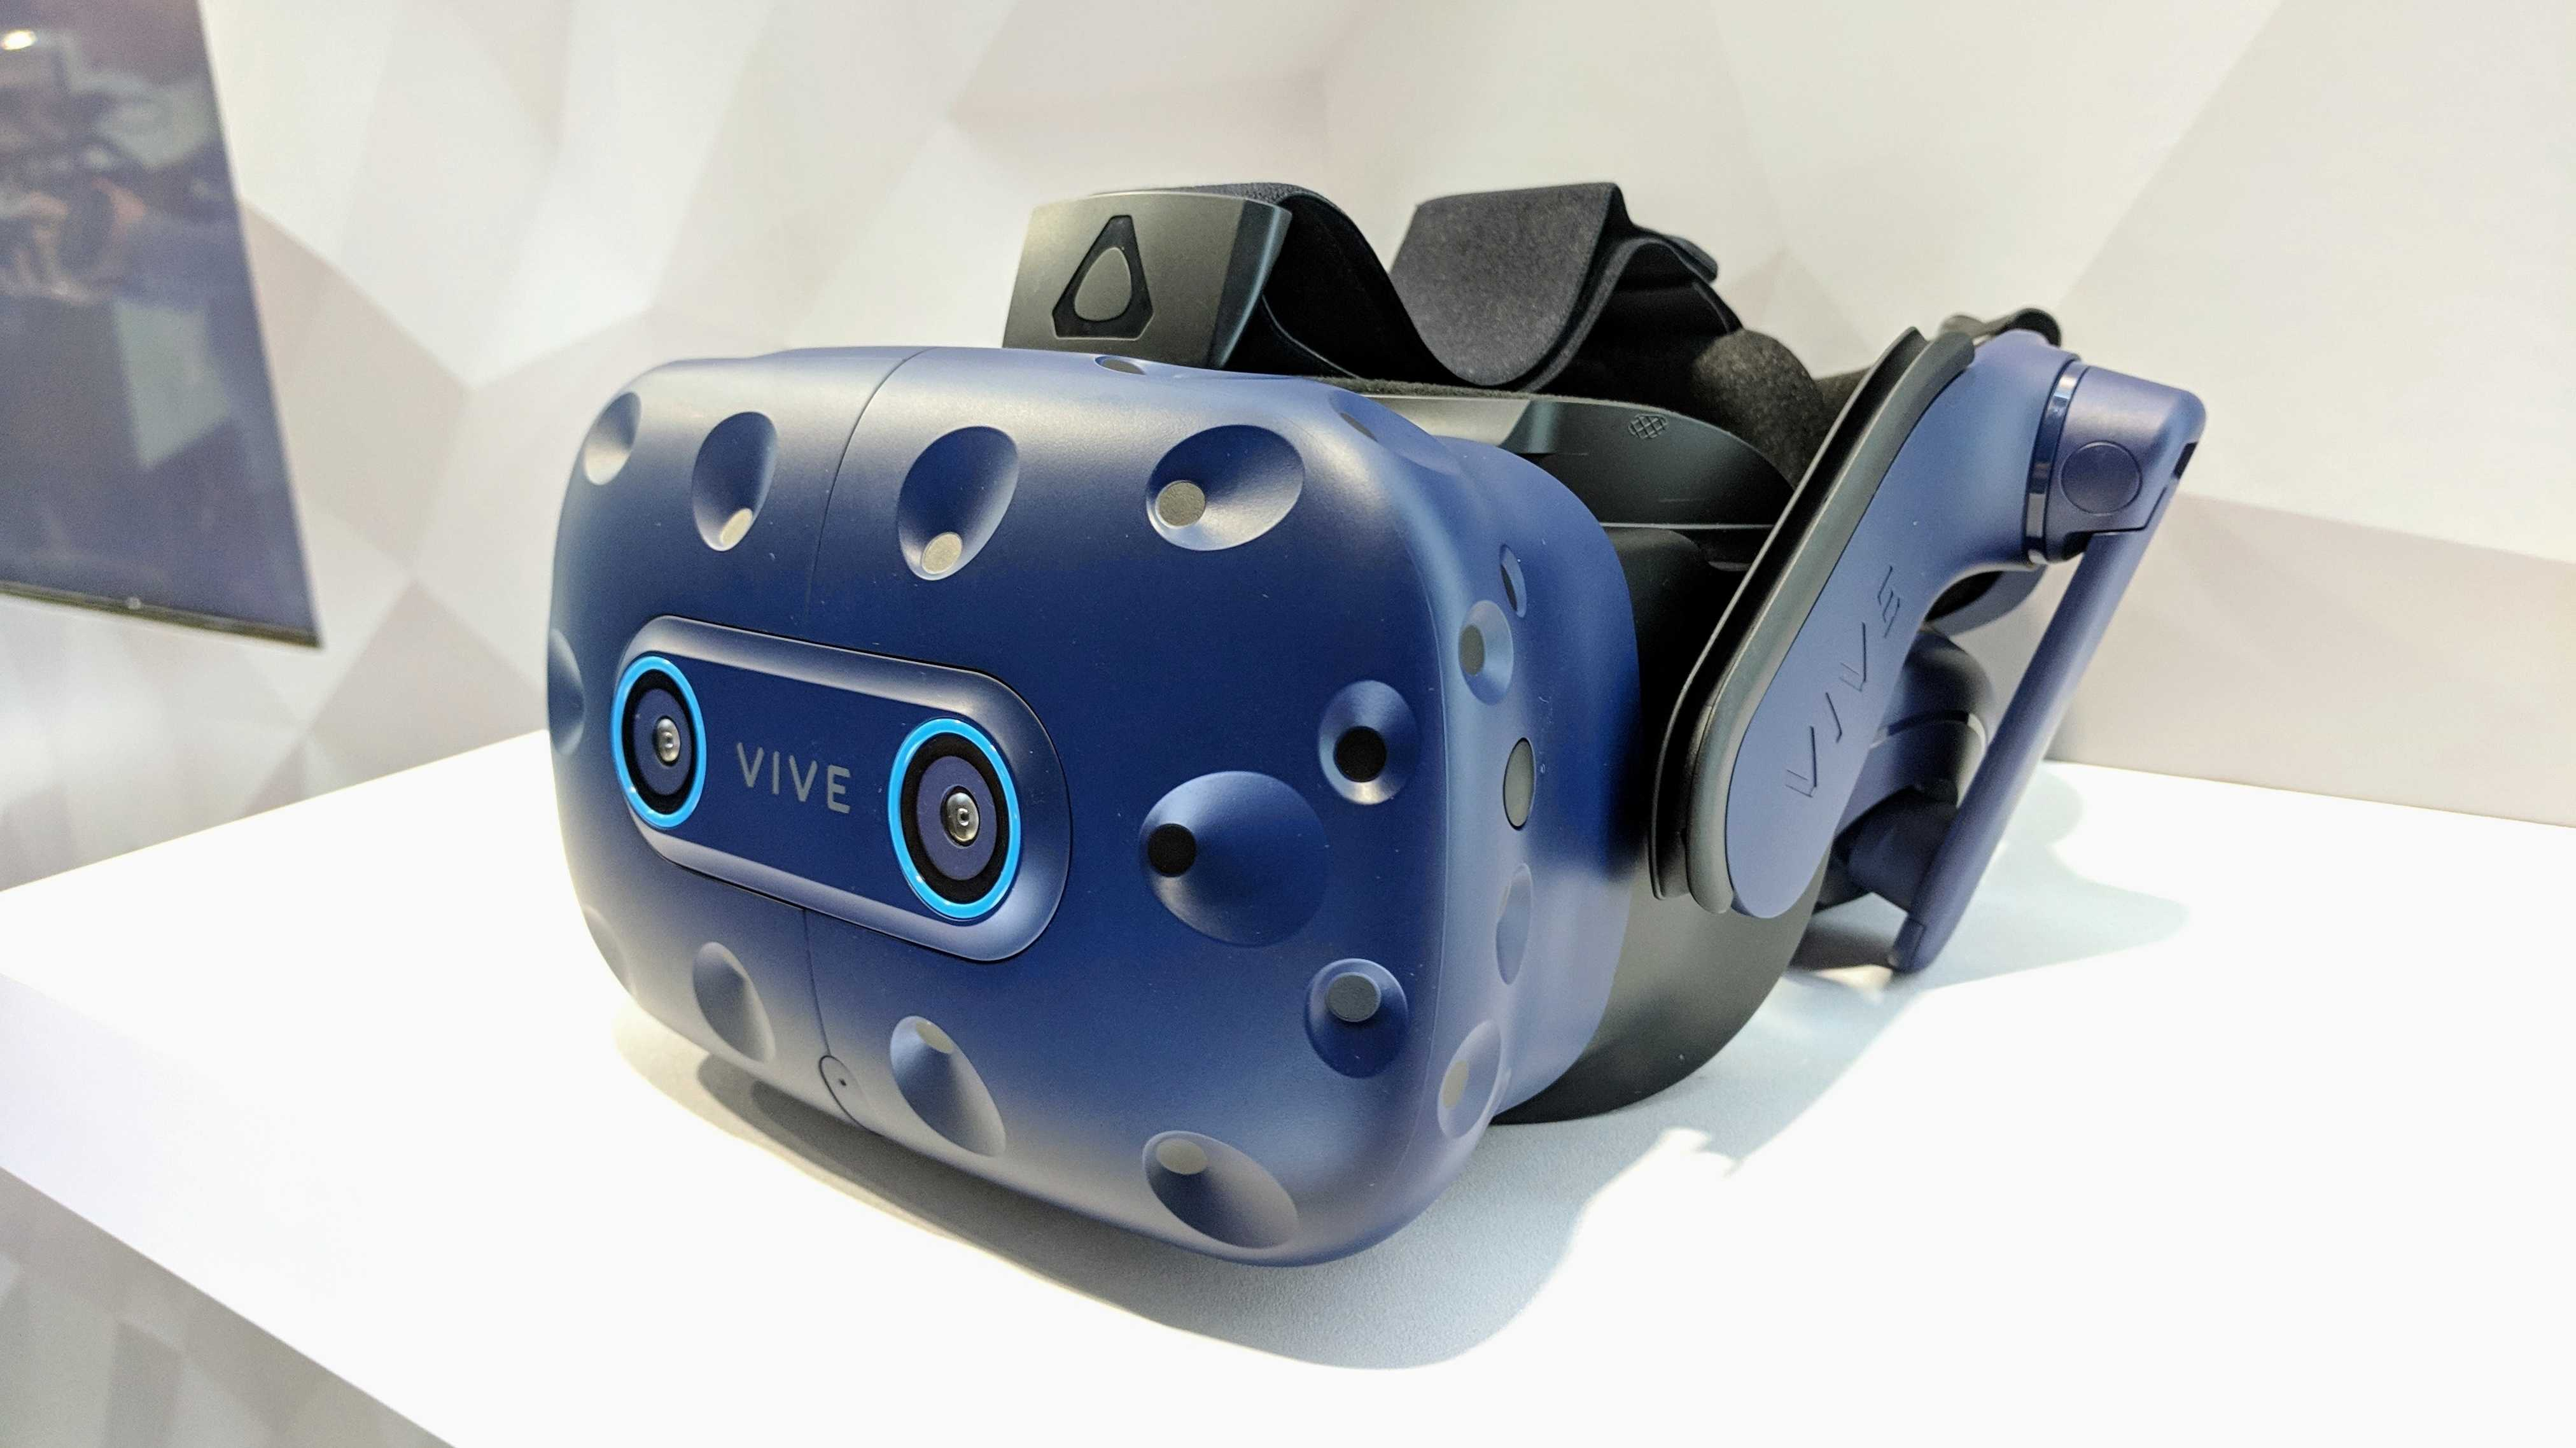 Vive Pro Eye: VR-Headset mit Eye-Tracking ausprobiert